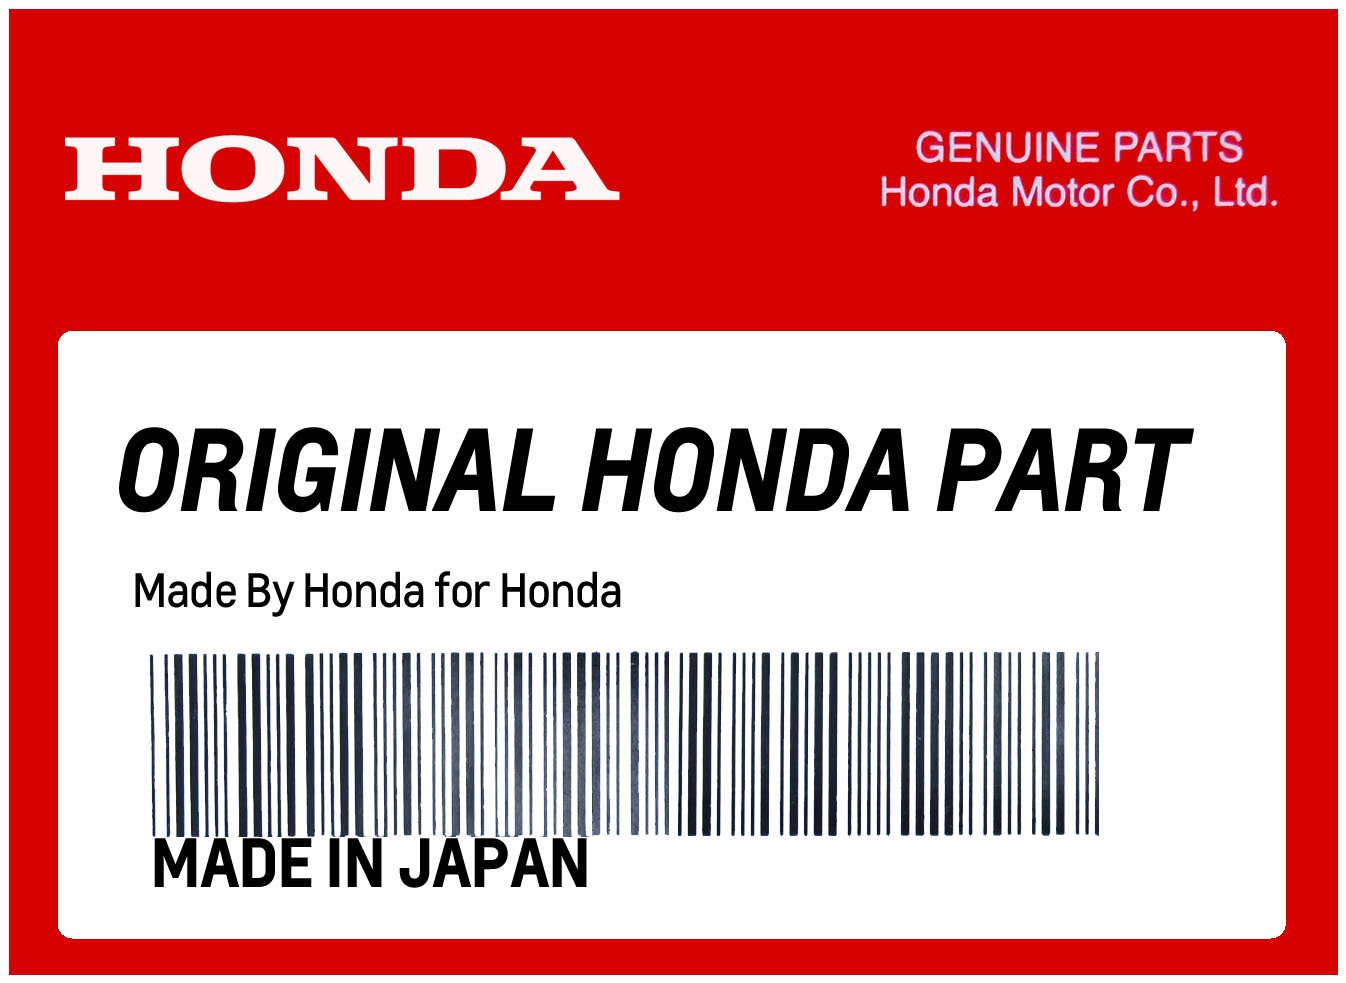 HONDA 53210-HA0-000 RUBBER HANDLE COVER